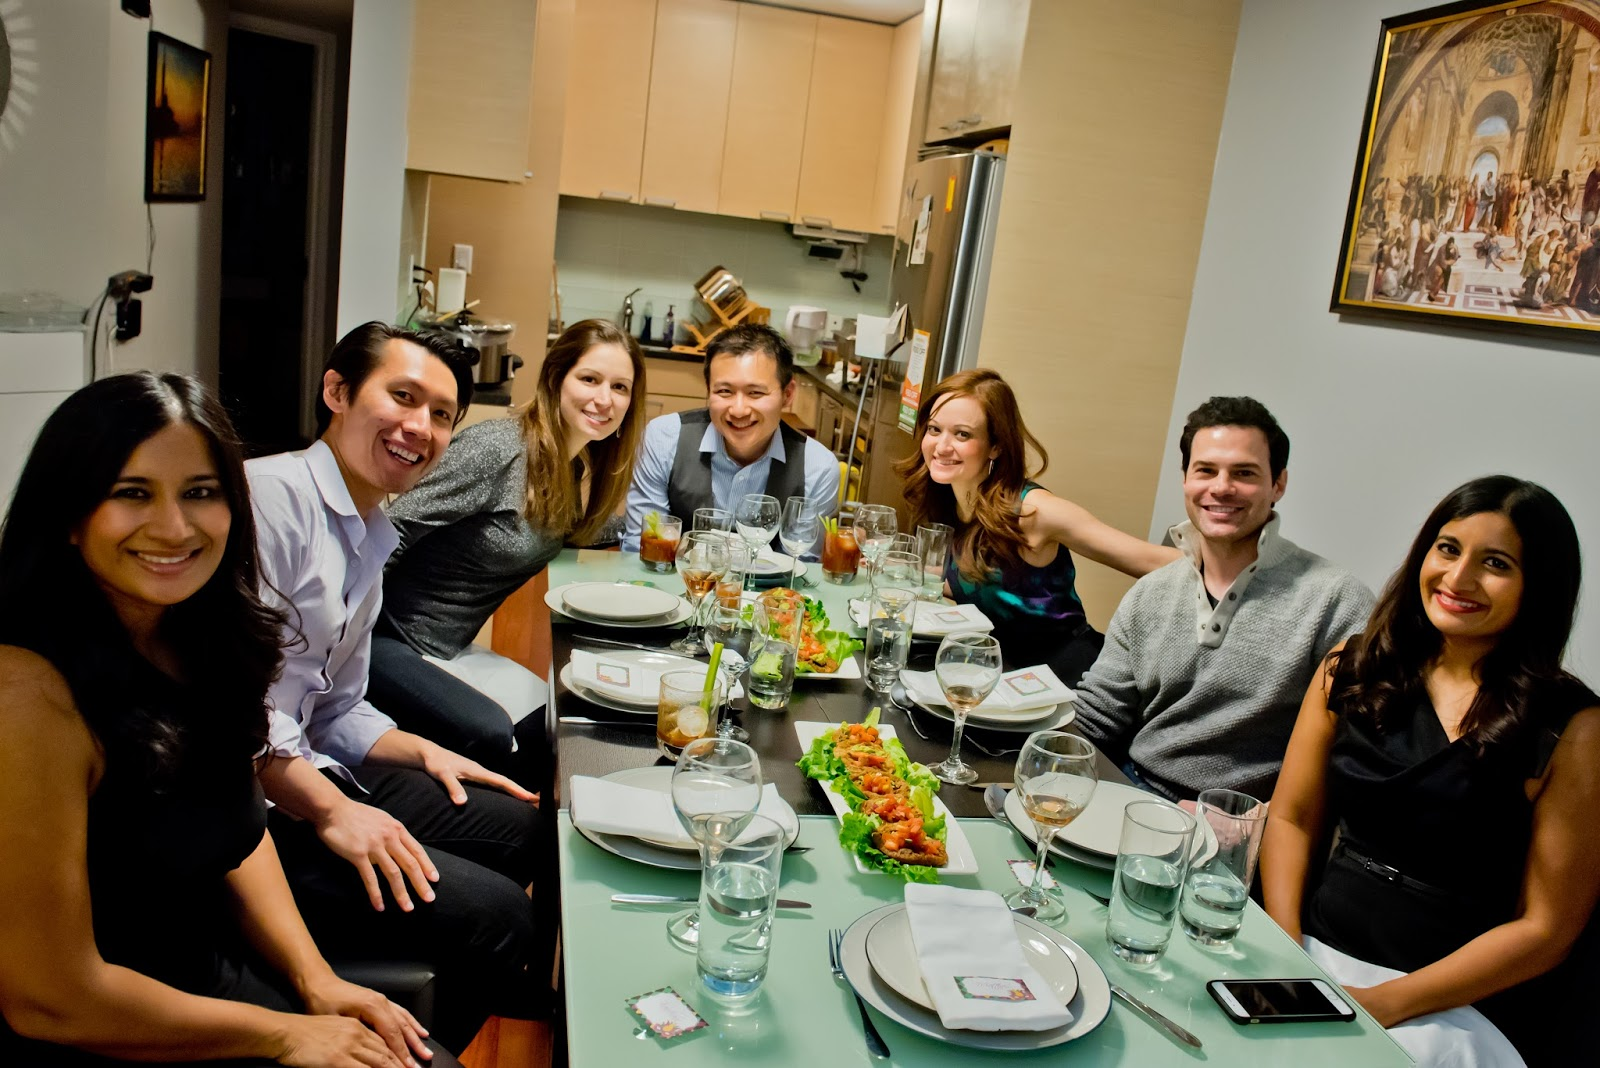 Dinner party at home